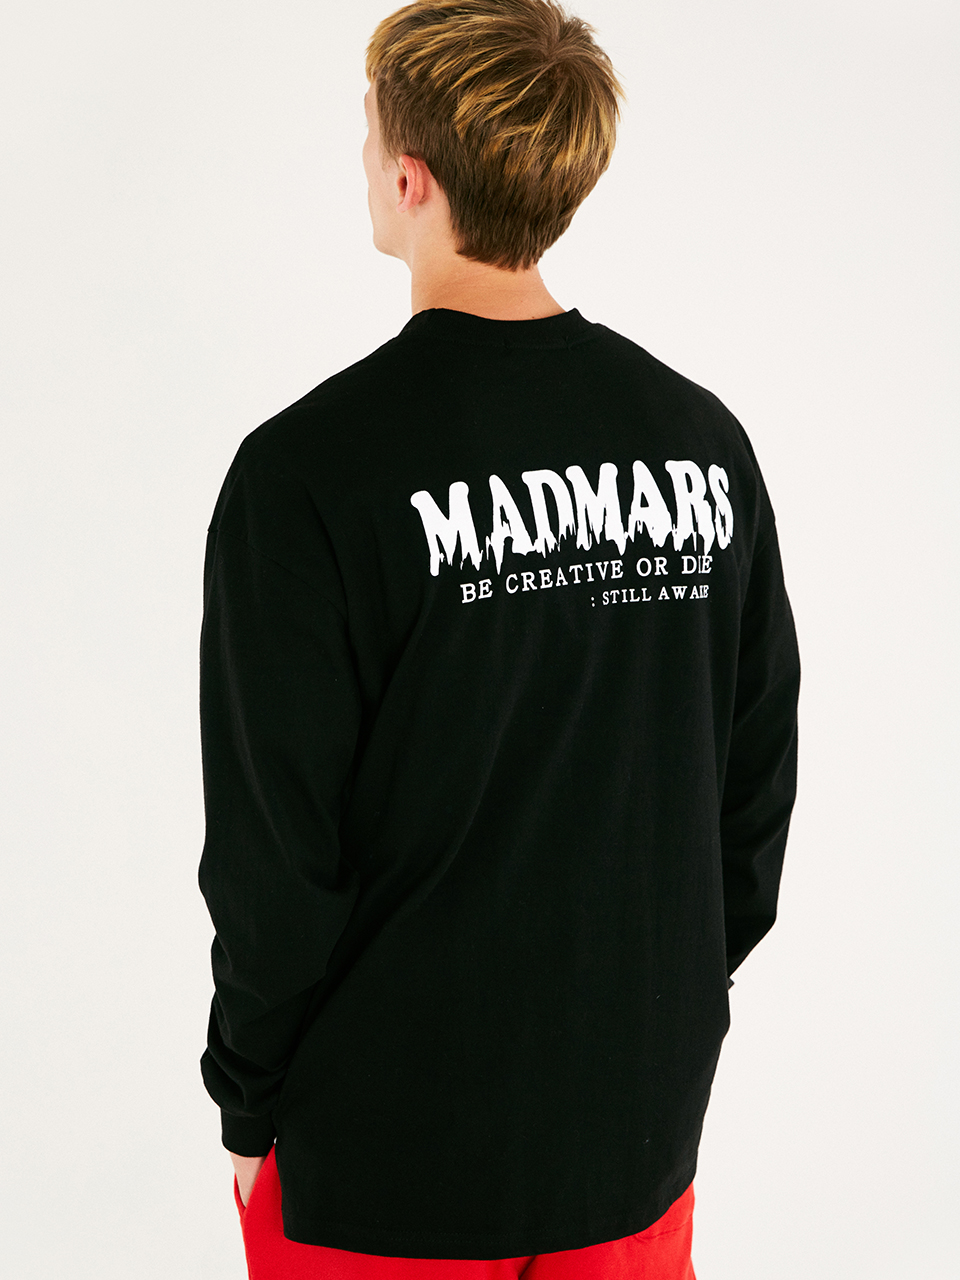 [매드마르스]DRIP LOGO LONG SLEEVE SHIRTCS_BLACK